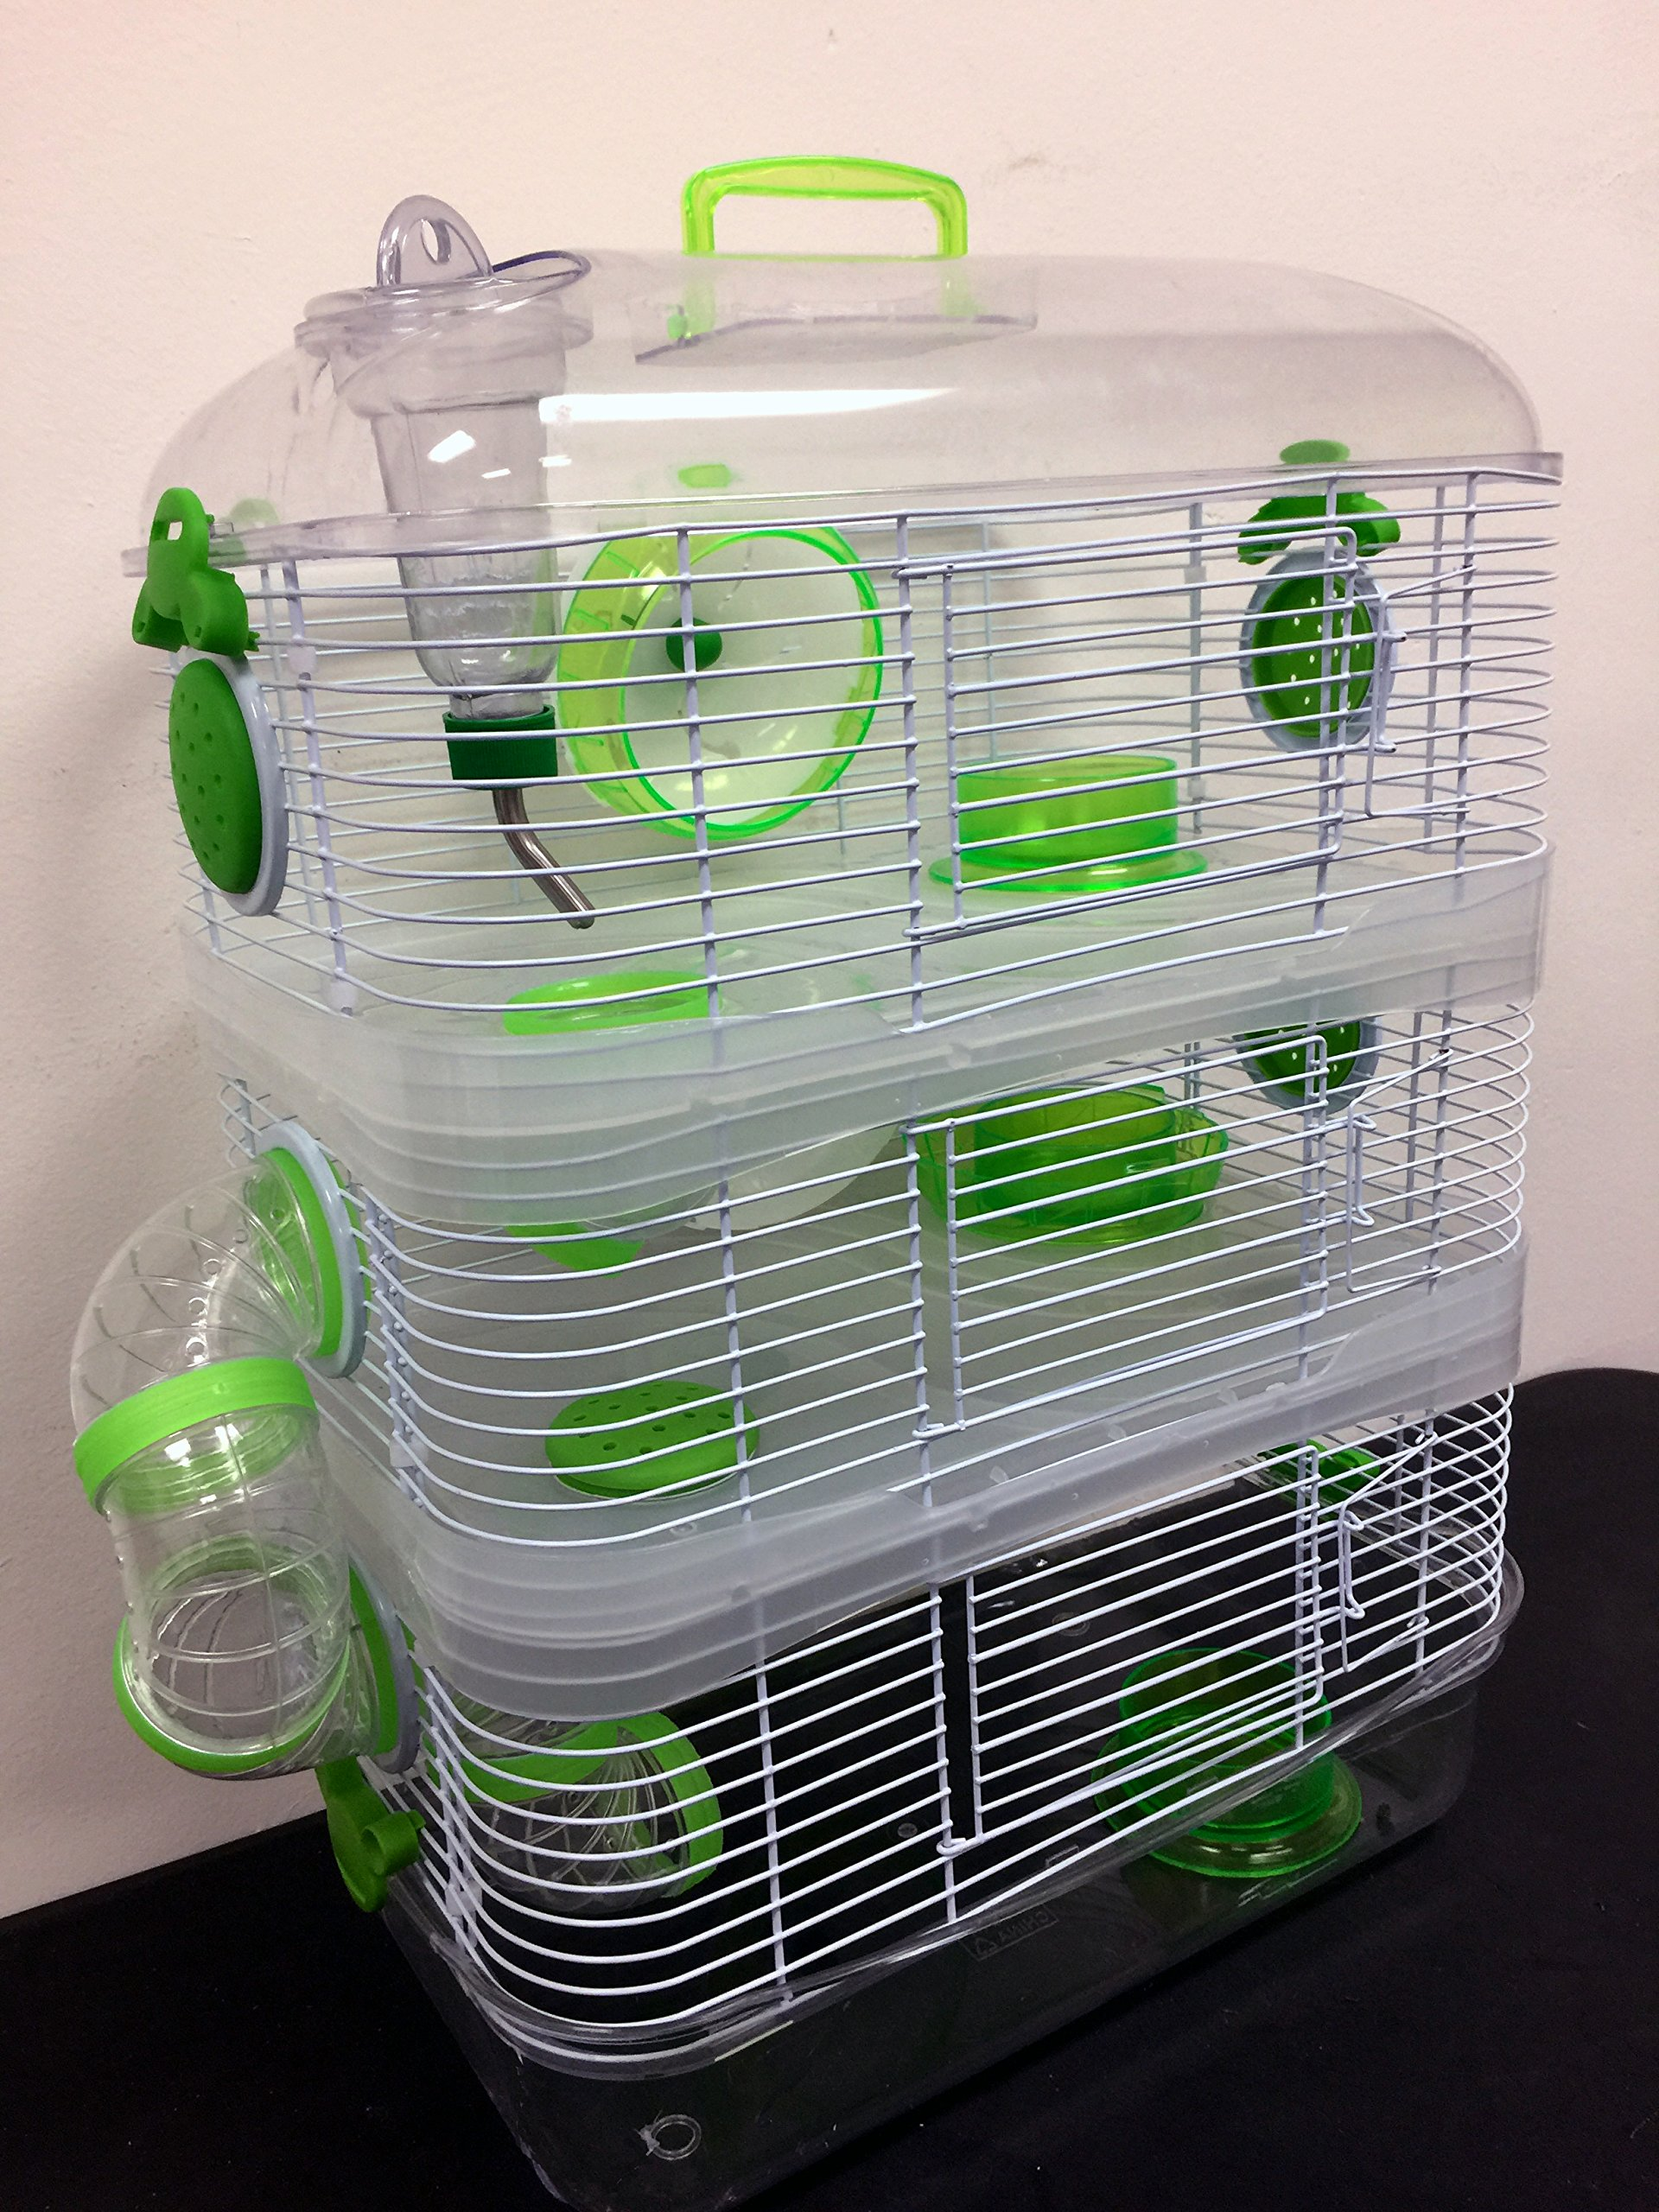 New 3 Solid Floor Levels Habitat Hamster Rodent Gerbil Mouse Mice Cage Clear Transparent (Green) by Mcage